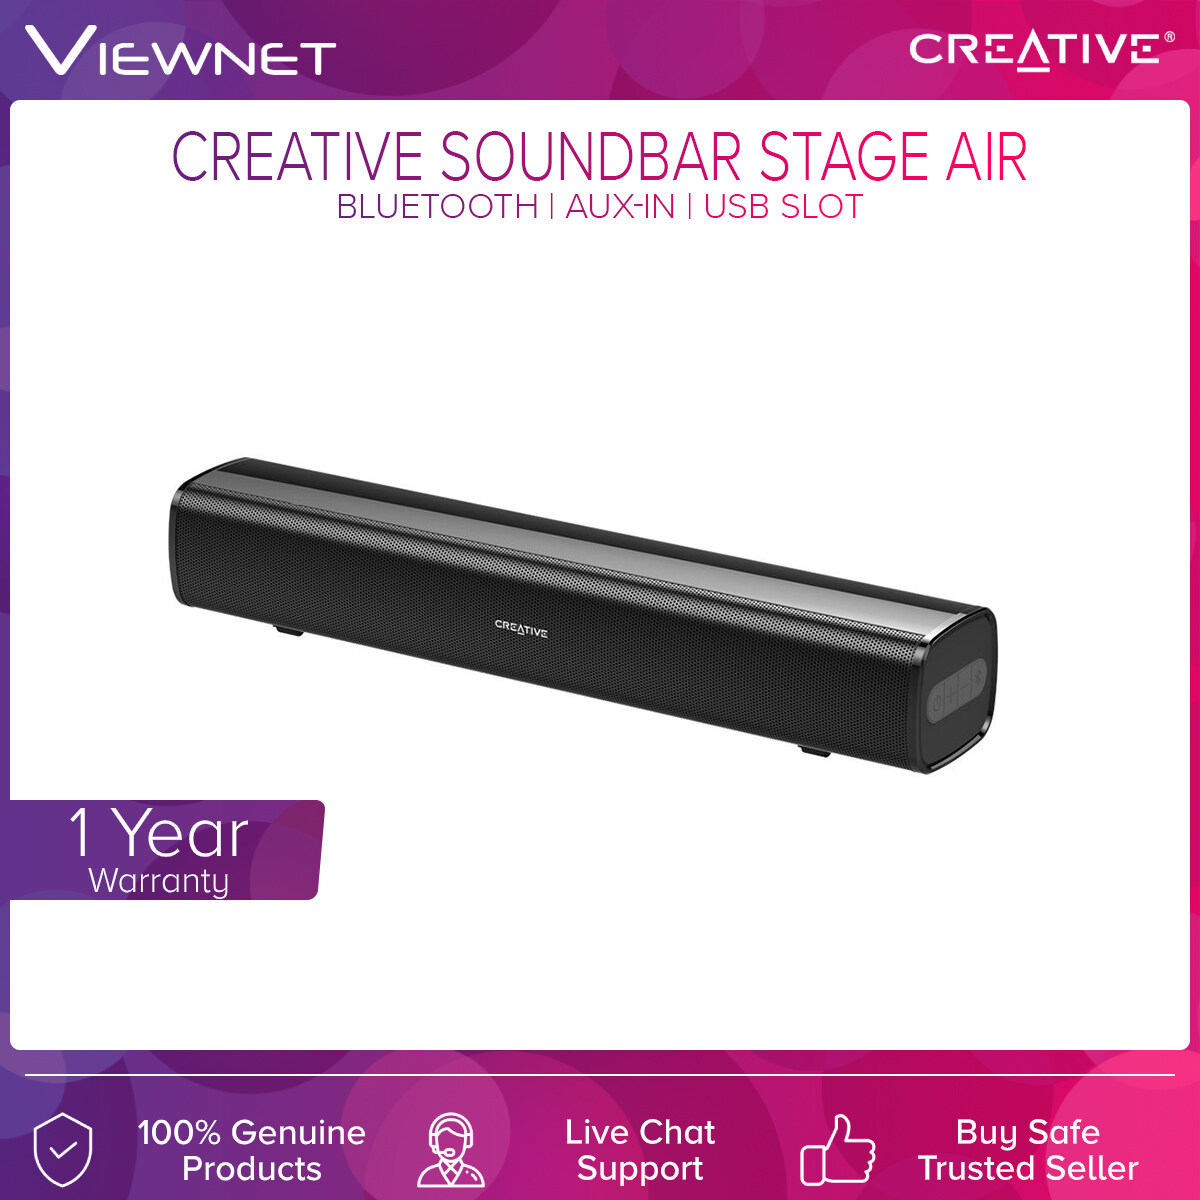 Creative Soundbar Stage Air with Bluetooth Connection, Compact Size, Aux-In Support, USB Slot, Up To 6 Hours Play Time